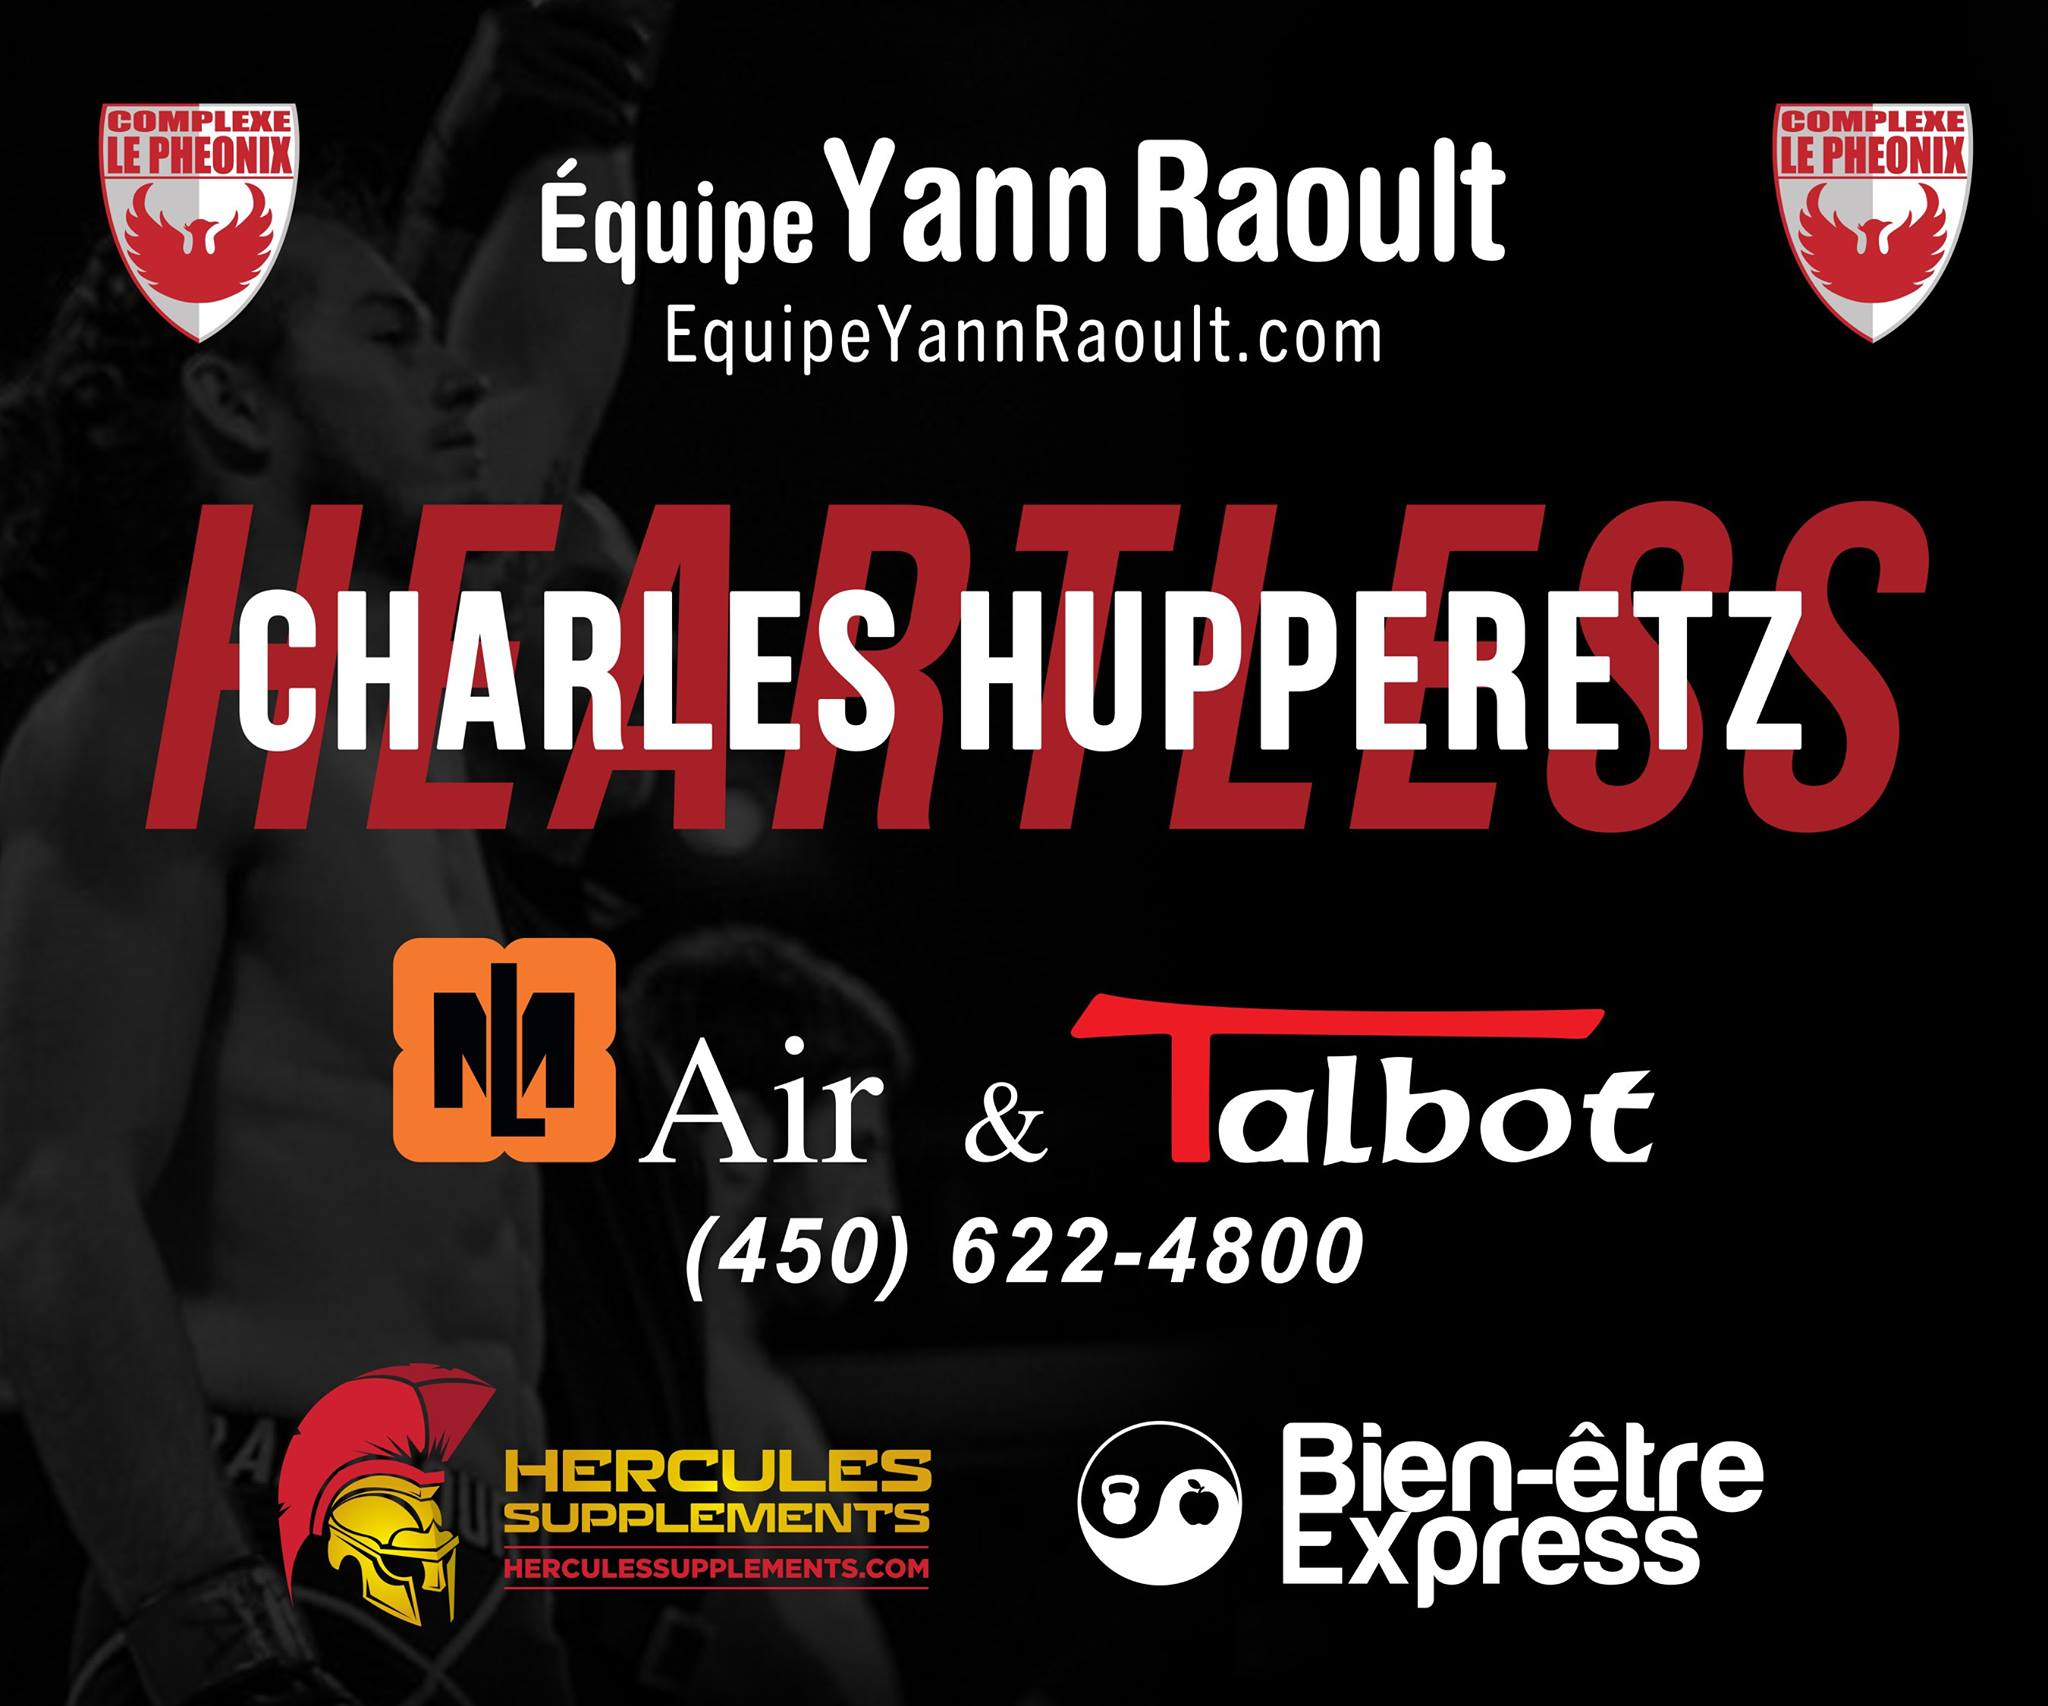 Team Charles Hupperetz